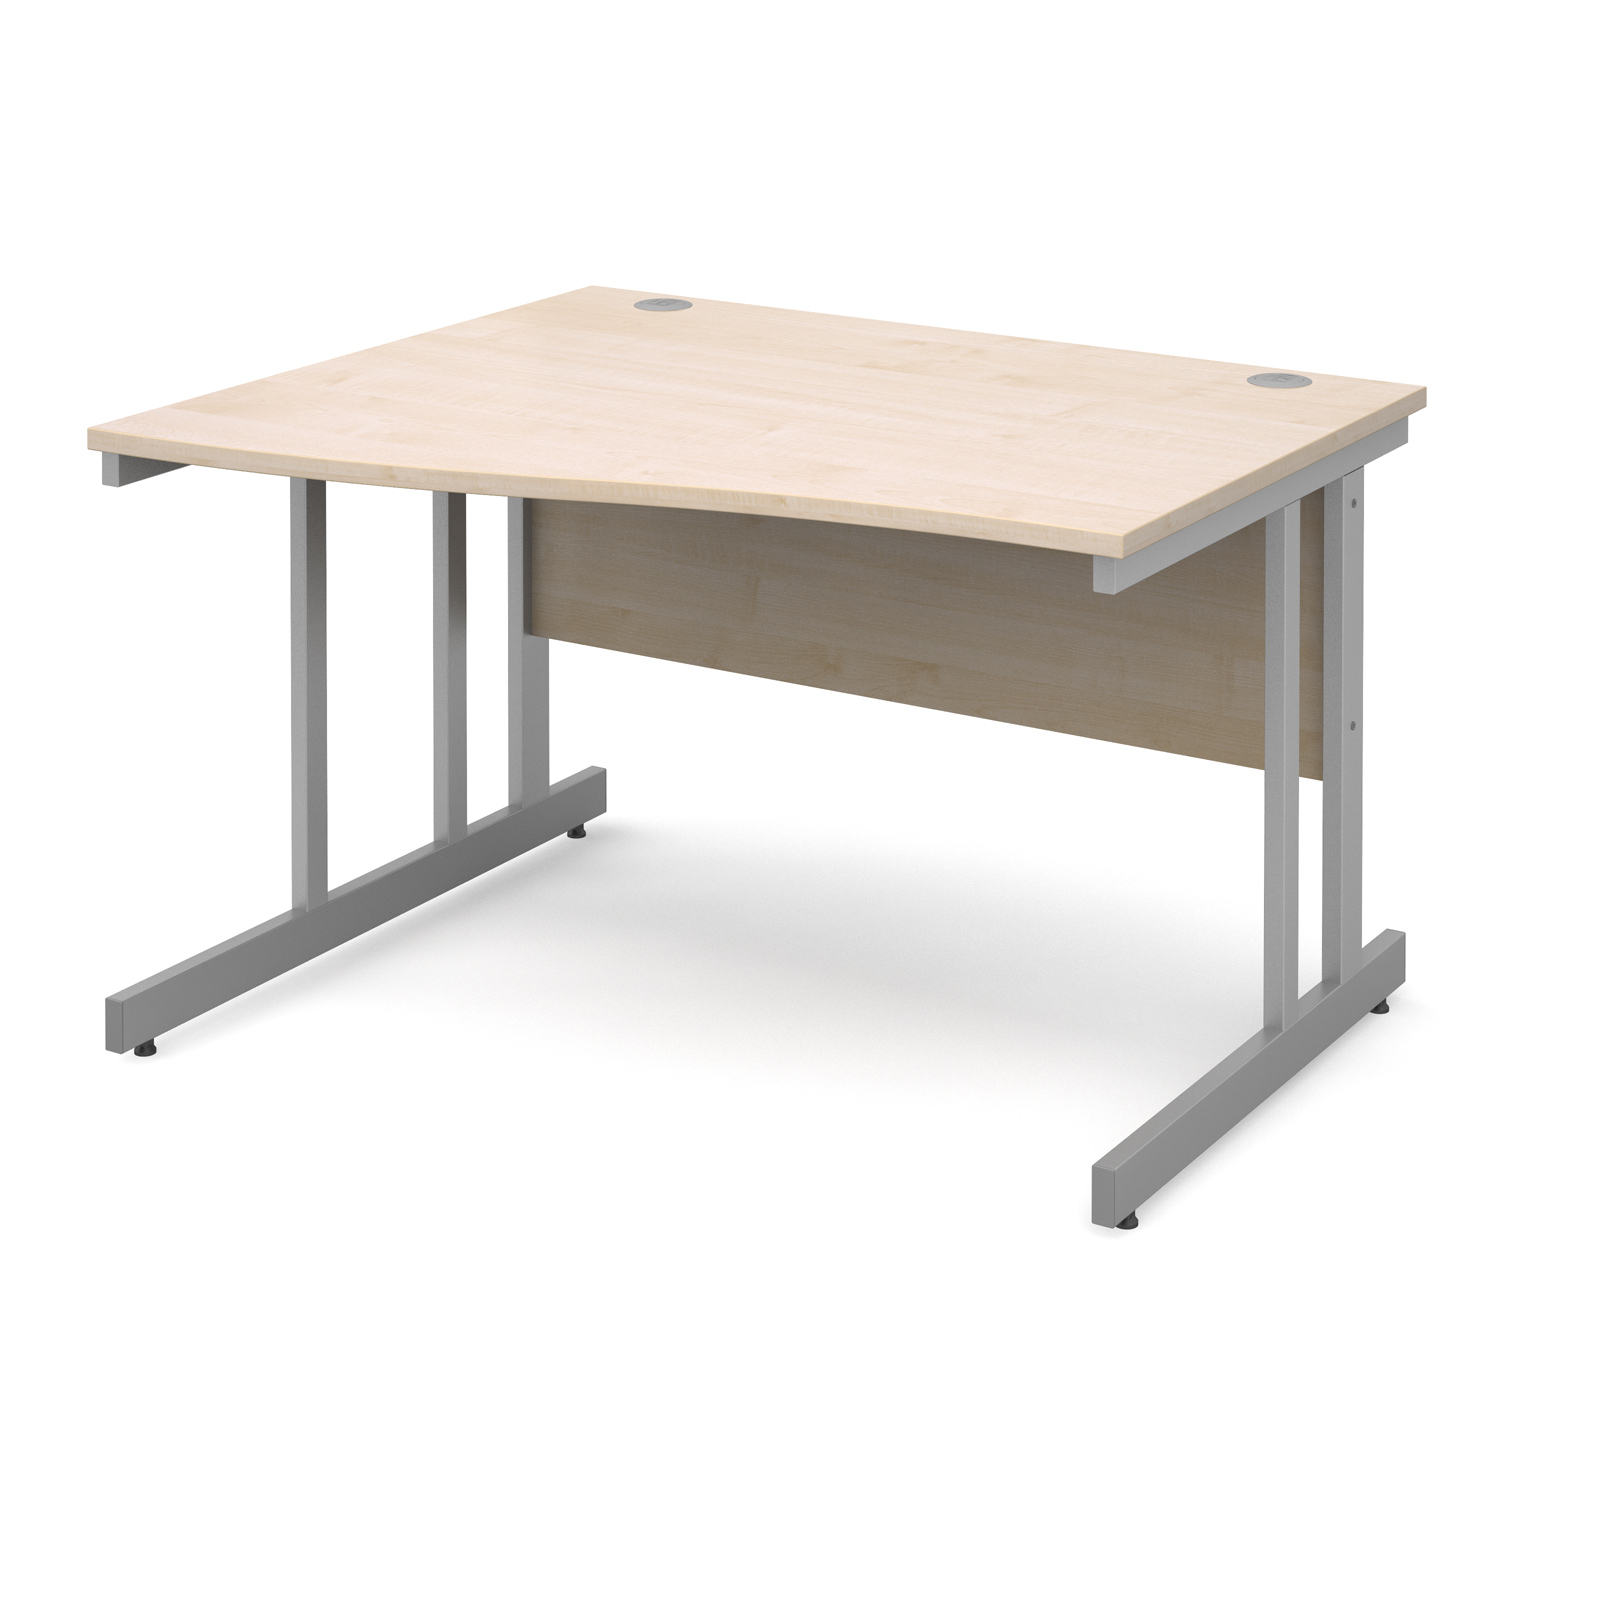 Momento left hand wave desk 1200mm - silver cantilever frame, maple top